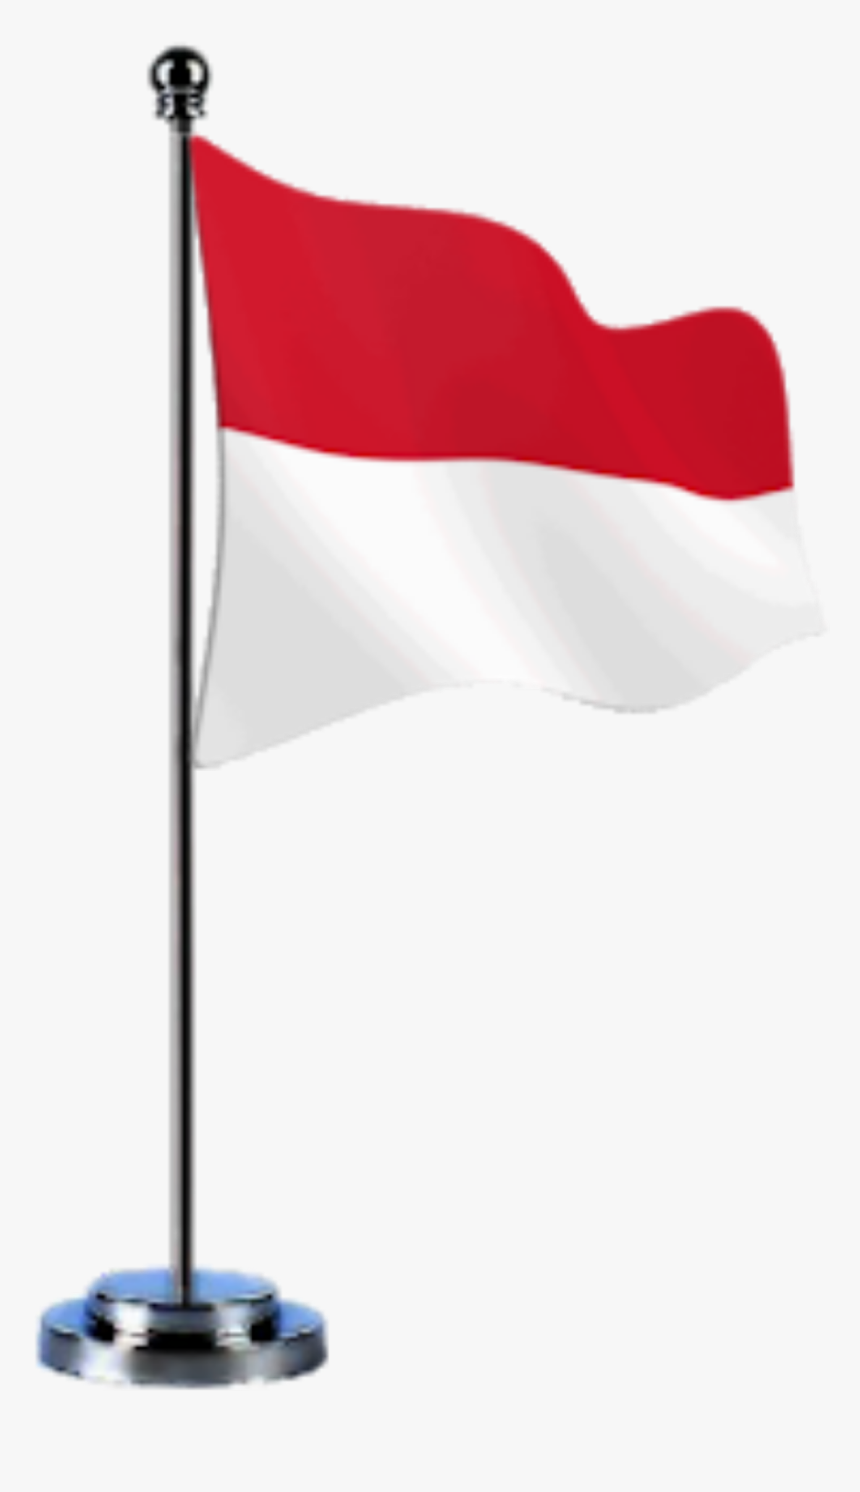 Bendera Merah Putih Vector Hd Hd Png Download Transparent Png Image Pngitem